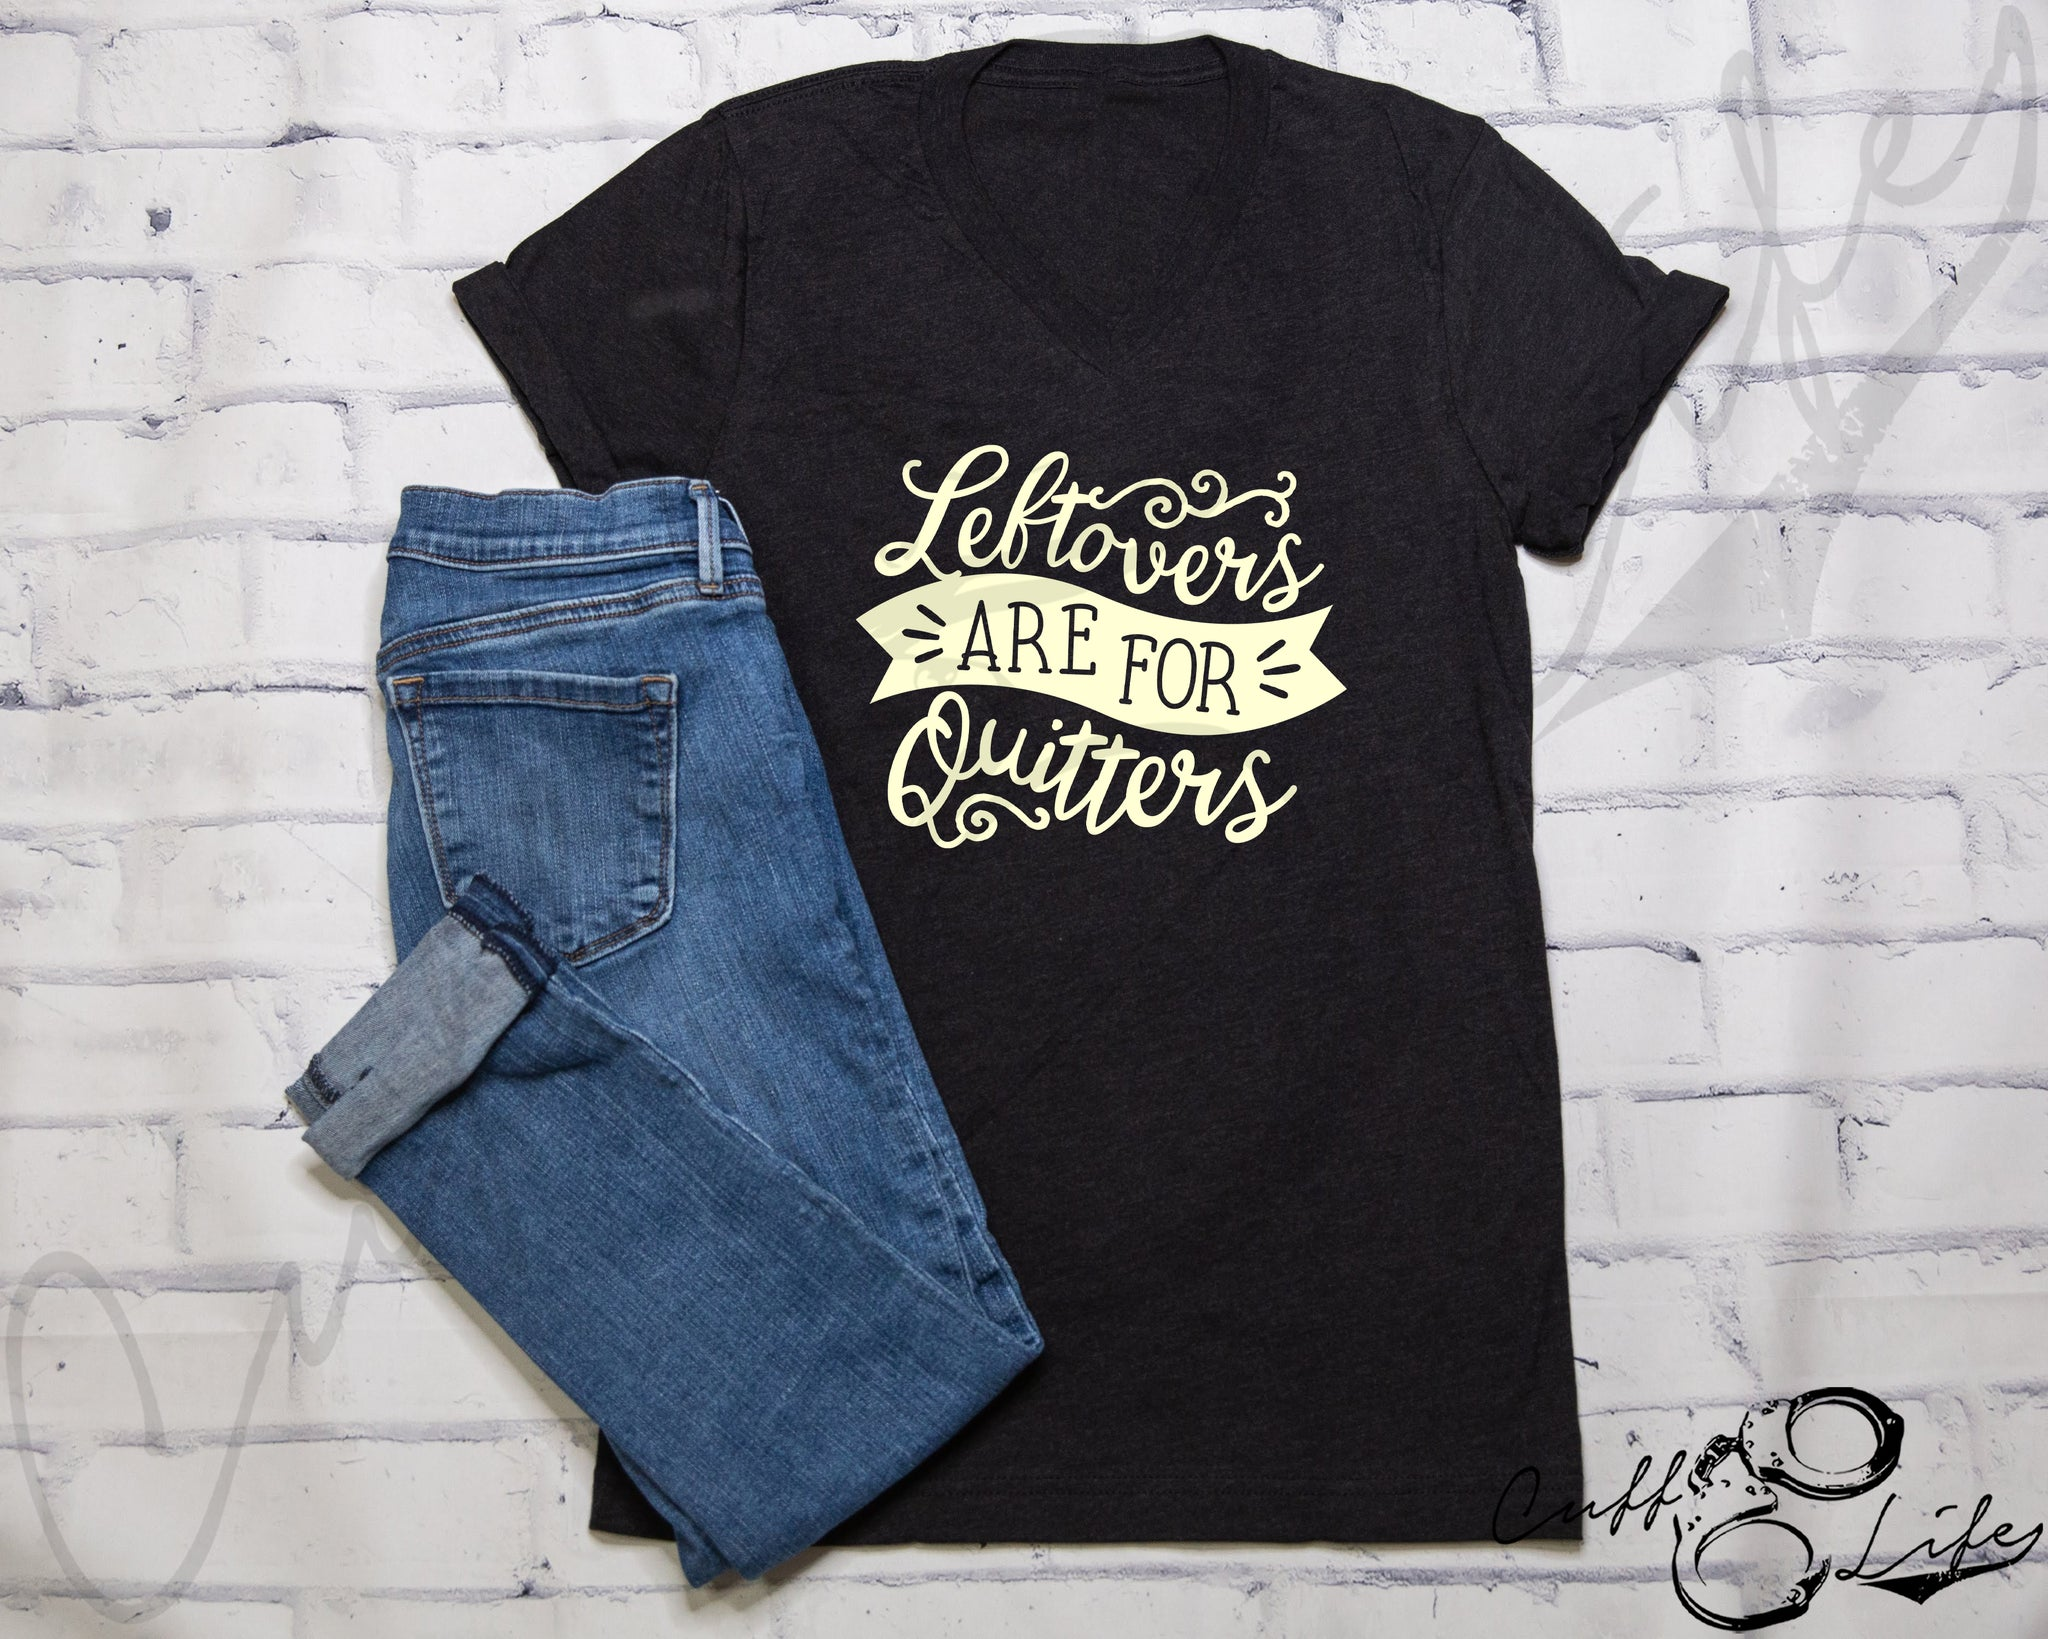 Leftovers are for Quitters - Boyfriend Fit V-Neck Tee